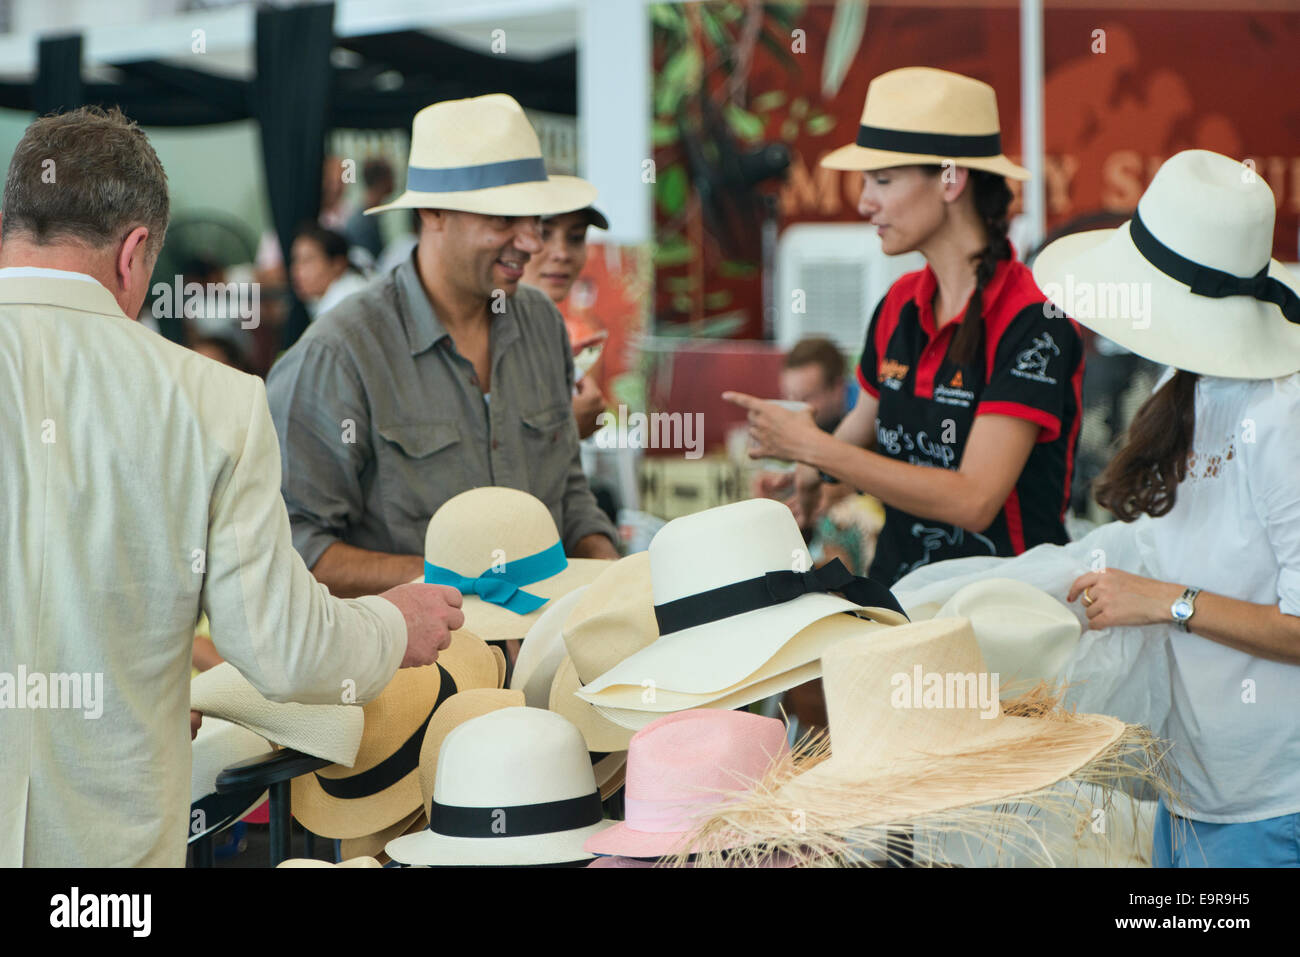 6759fcf68cc Panama hat seller at the King s Cup Polo Tournament in Bangkok Stock ...